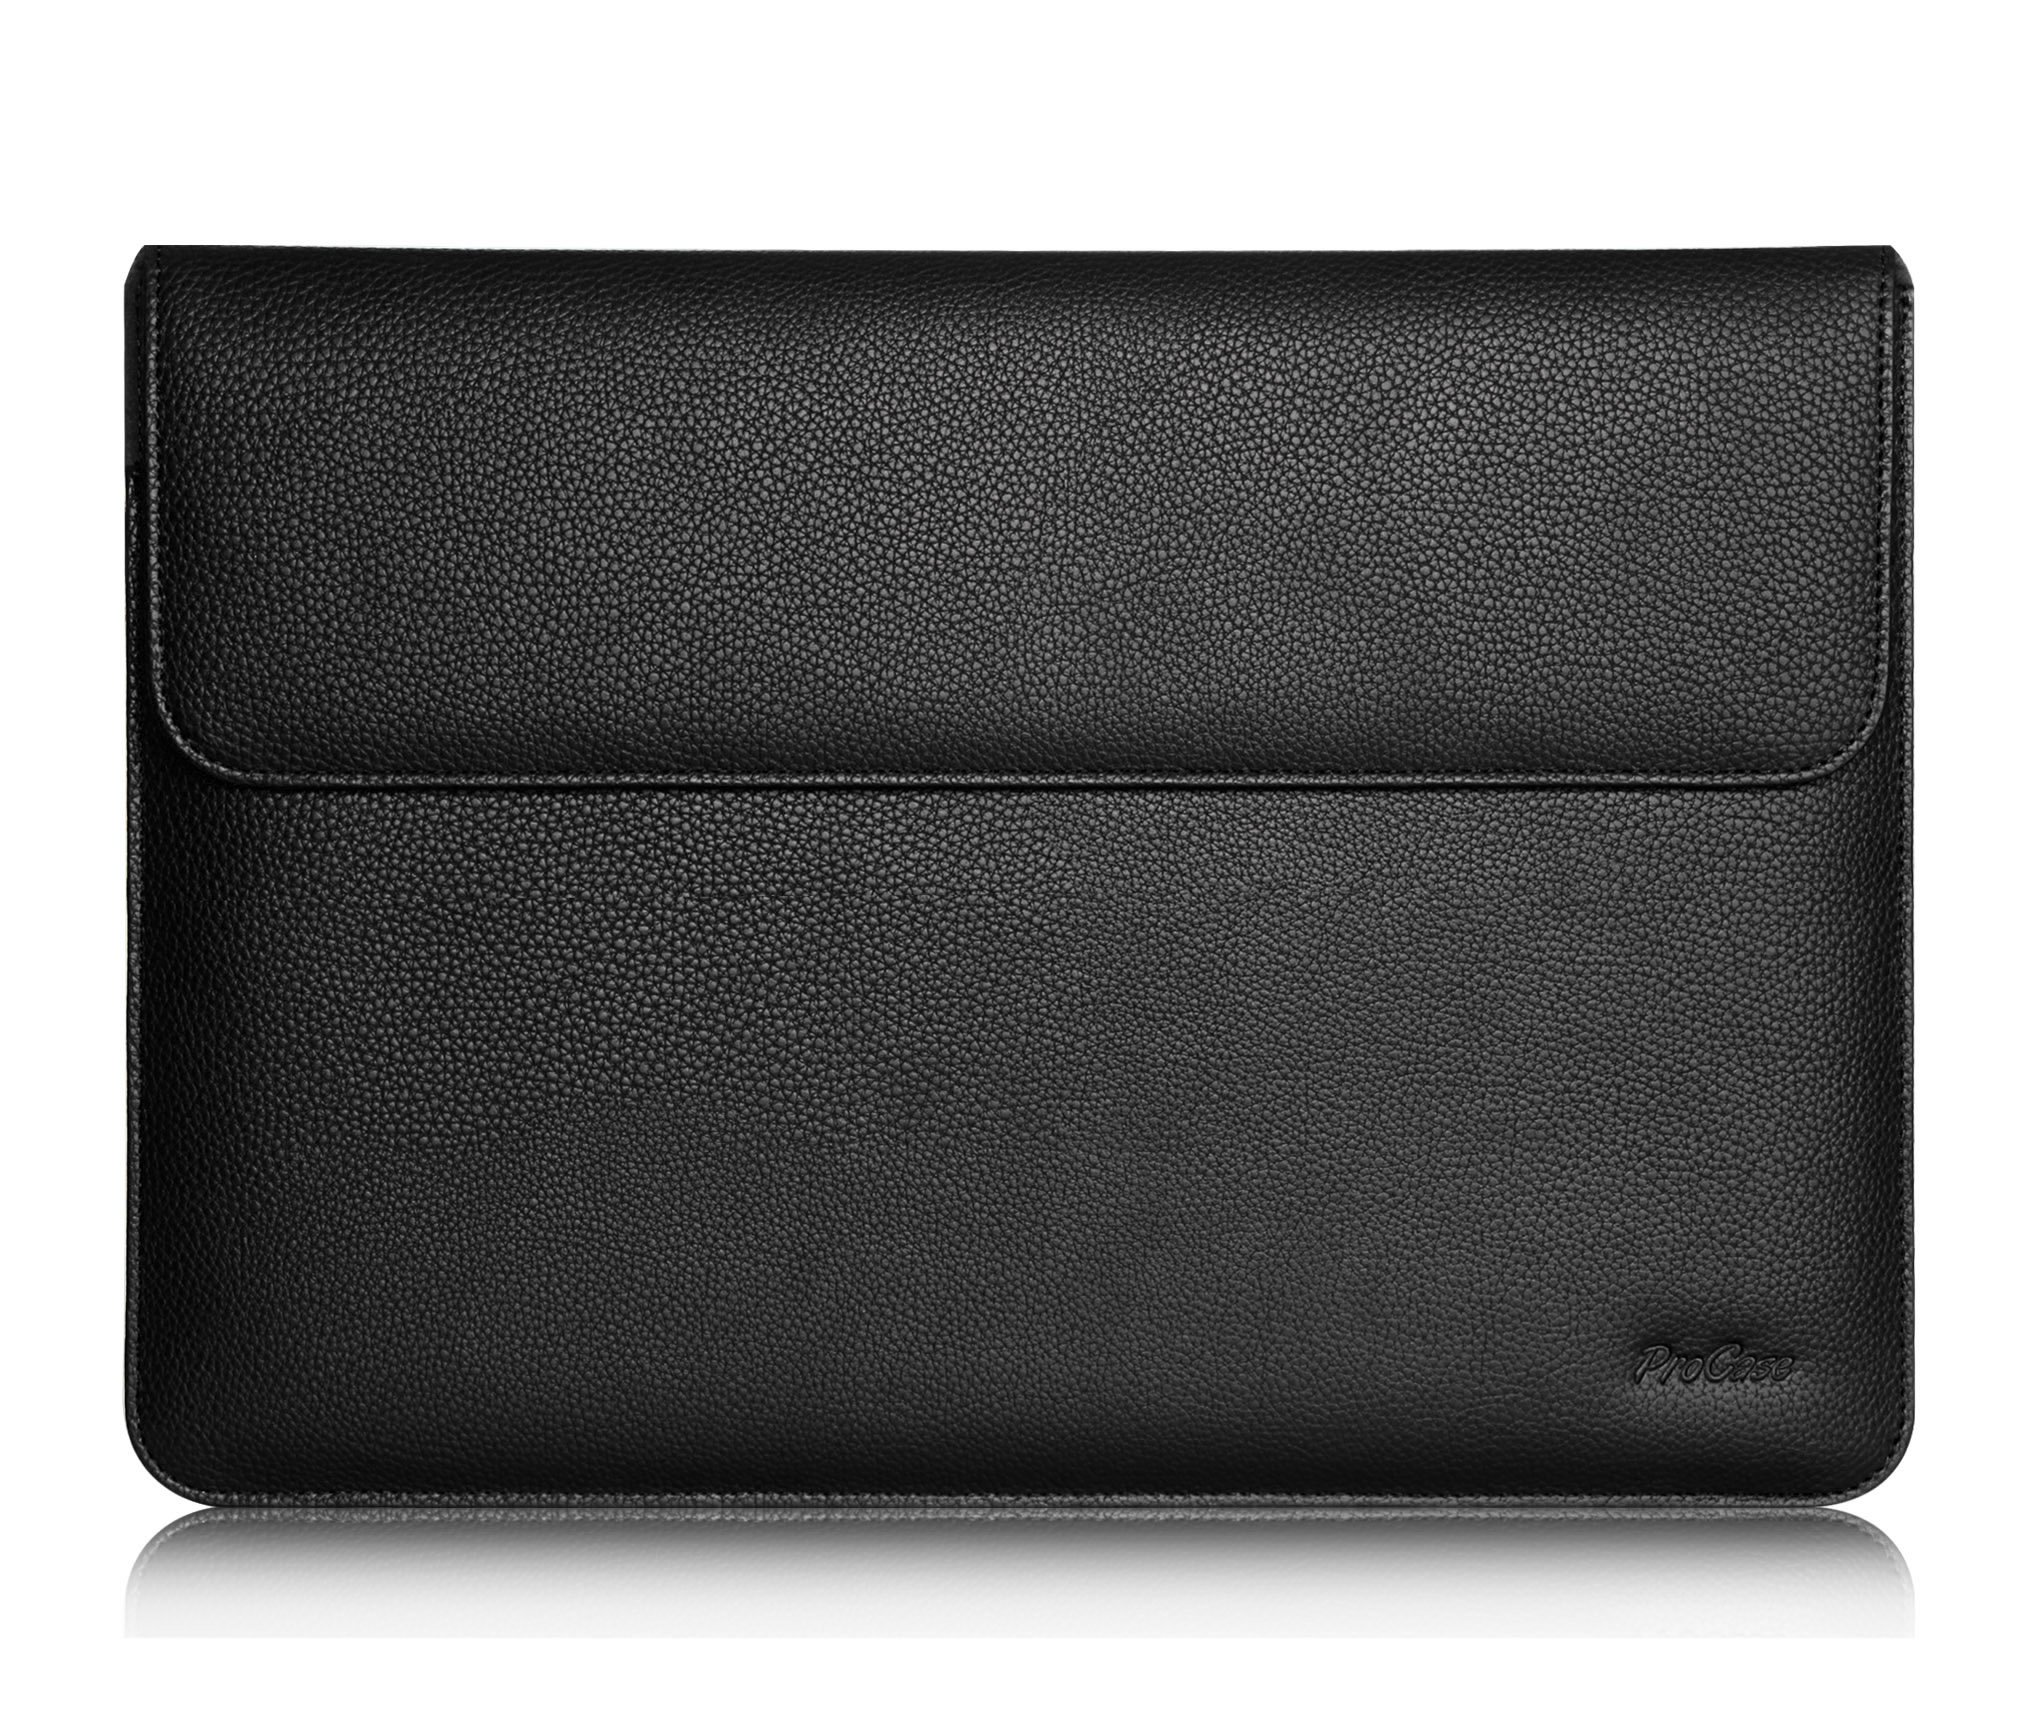 "ProCase 9.7-10.5 Inch Wallet Sleeve Case for 2017 iPad 9.7 In, iPad Pro 10.5 Inch, iPad Pro 9.7"", iPad Air/Air 2, Samsung Galaxy Tab S3 S2 9.7/Tab A 10.1, Document Pocket and Pen Holder (Black)"